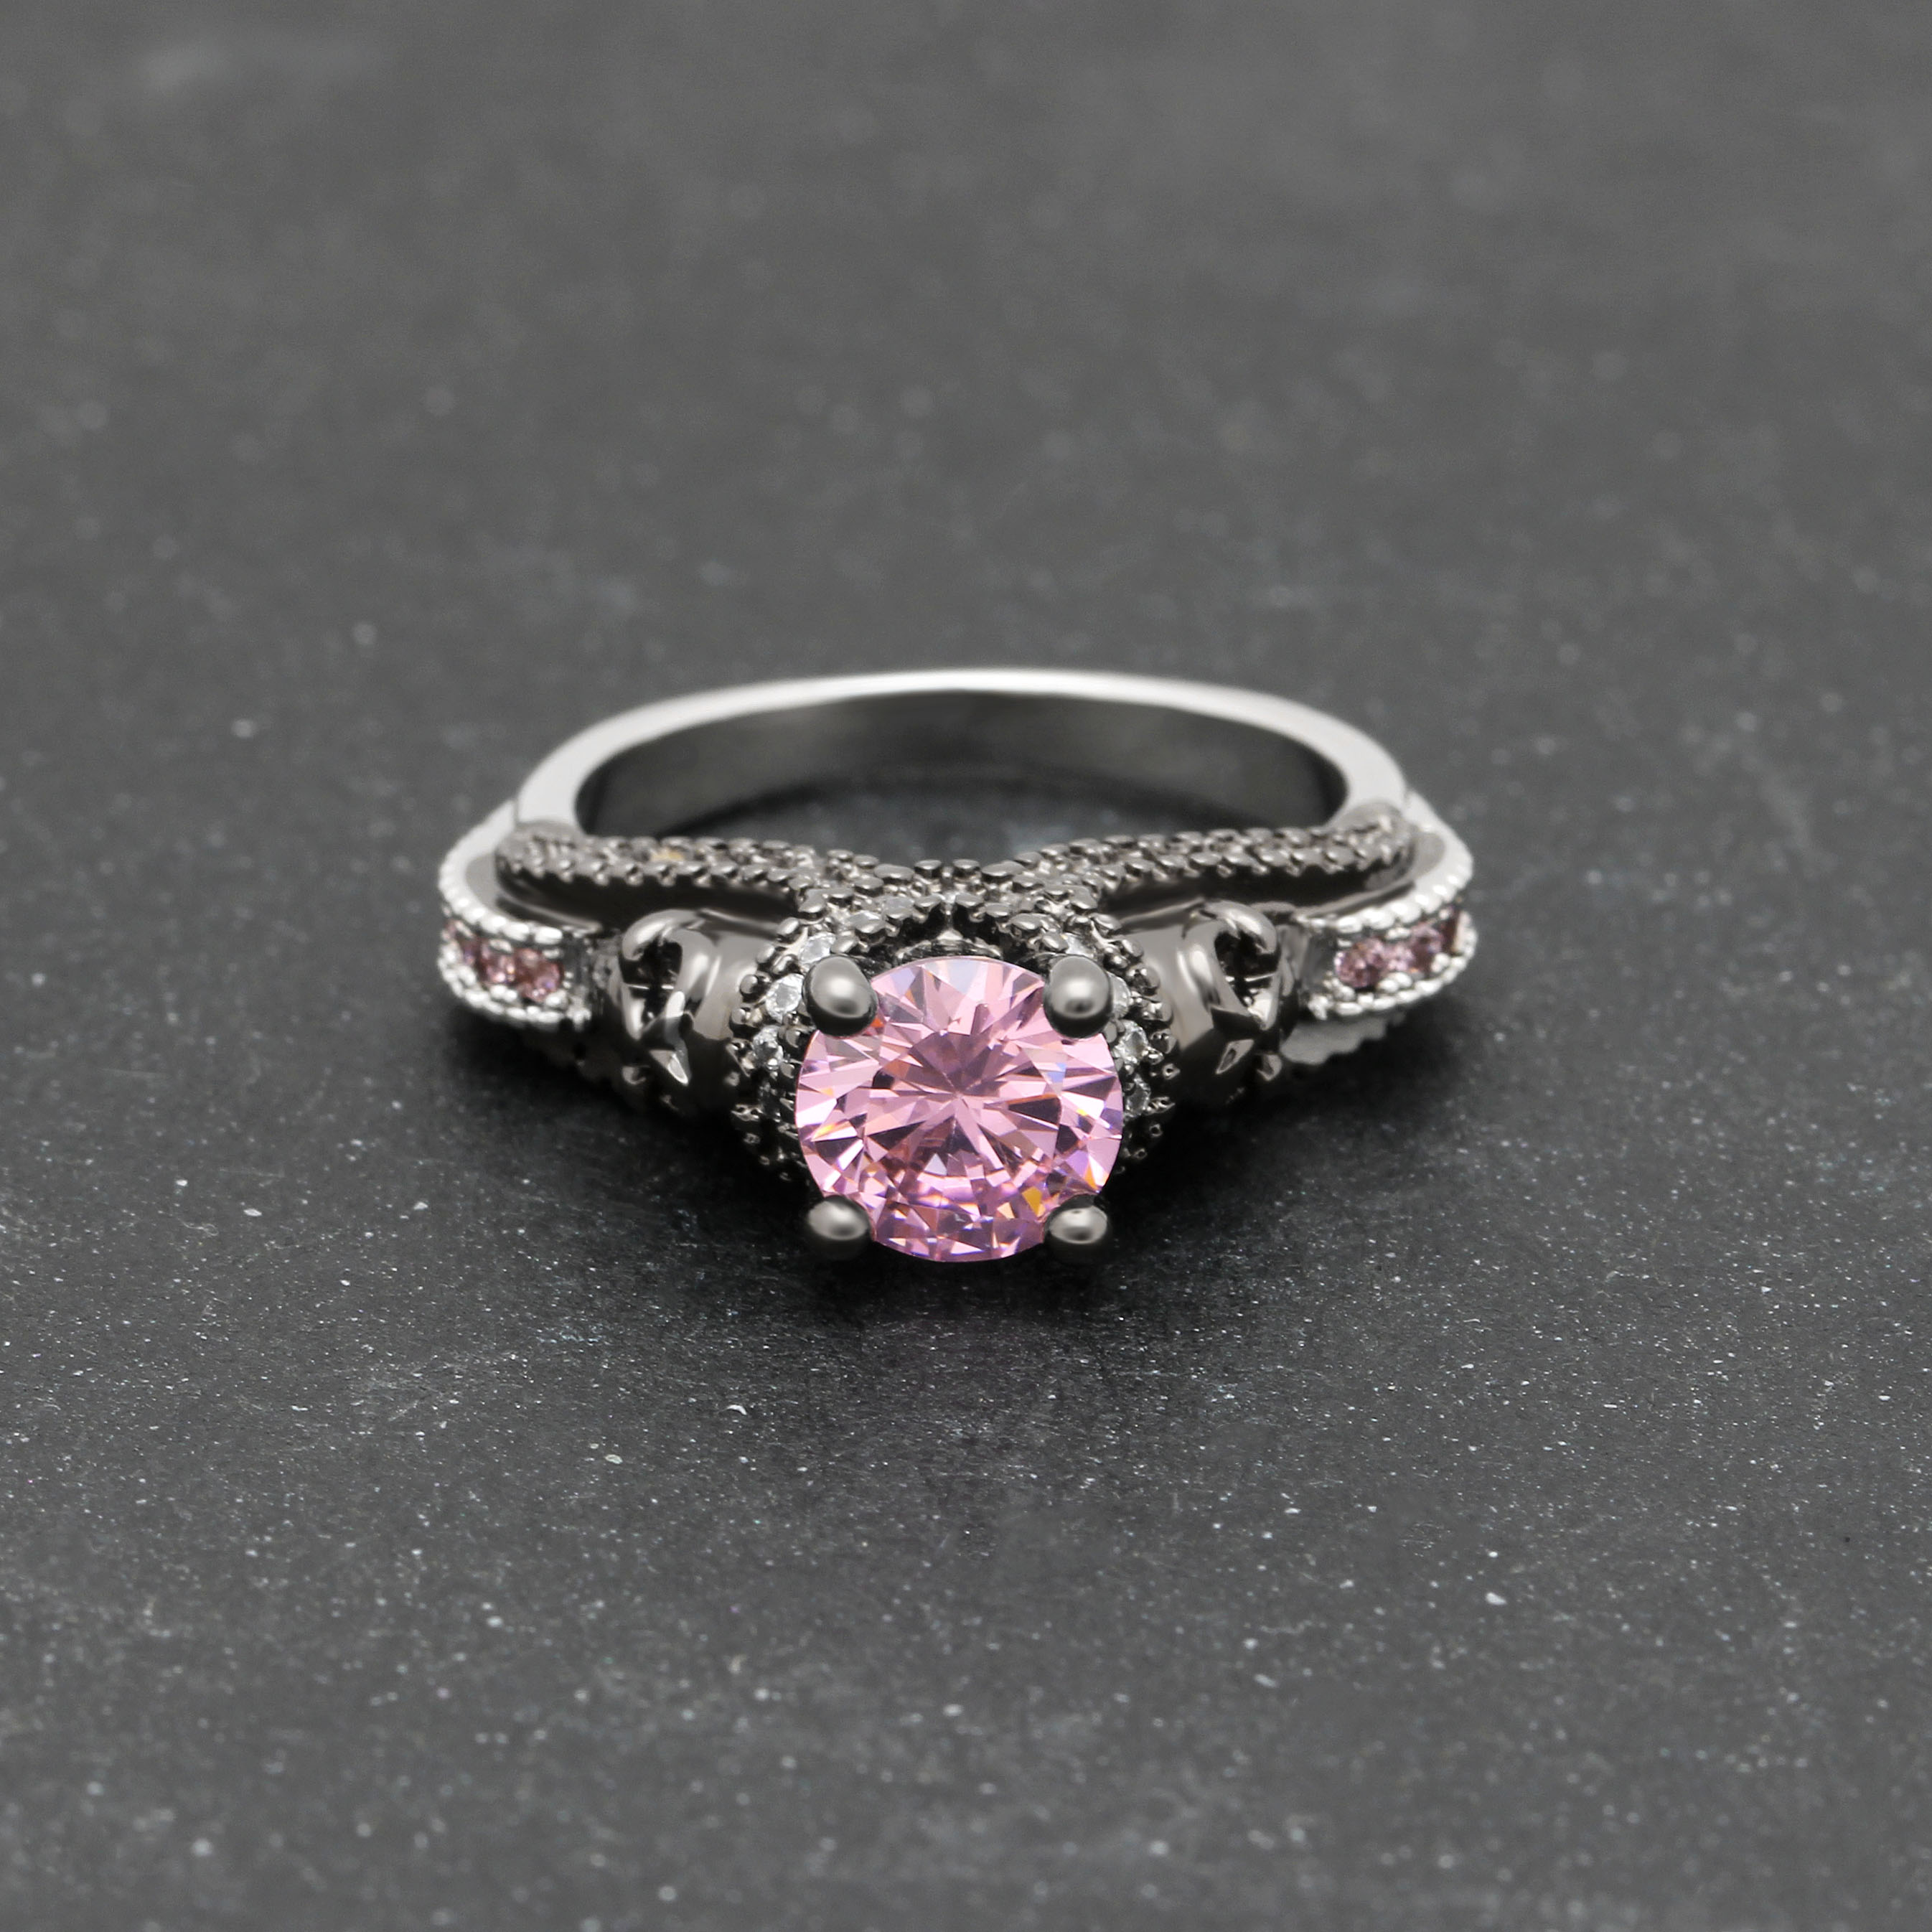 of engagement website purple beautiful decorating about more and jewellrys gun photo rings design size his information heart wedding hers ring diamond awesome set rock promise hersk black punk full find